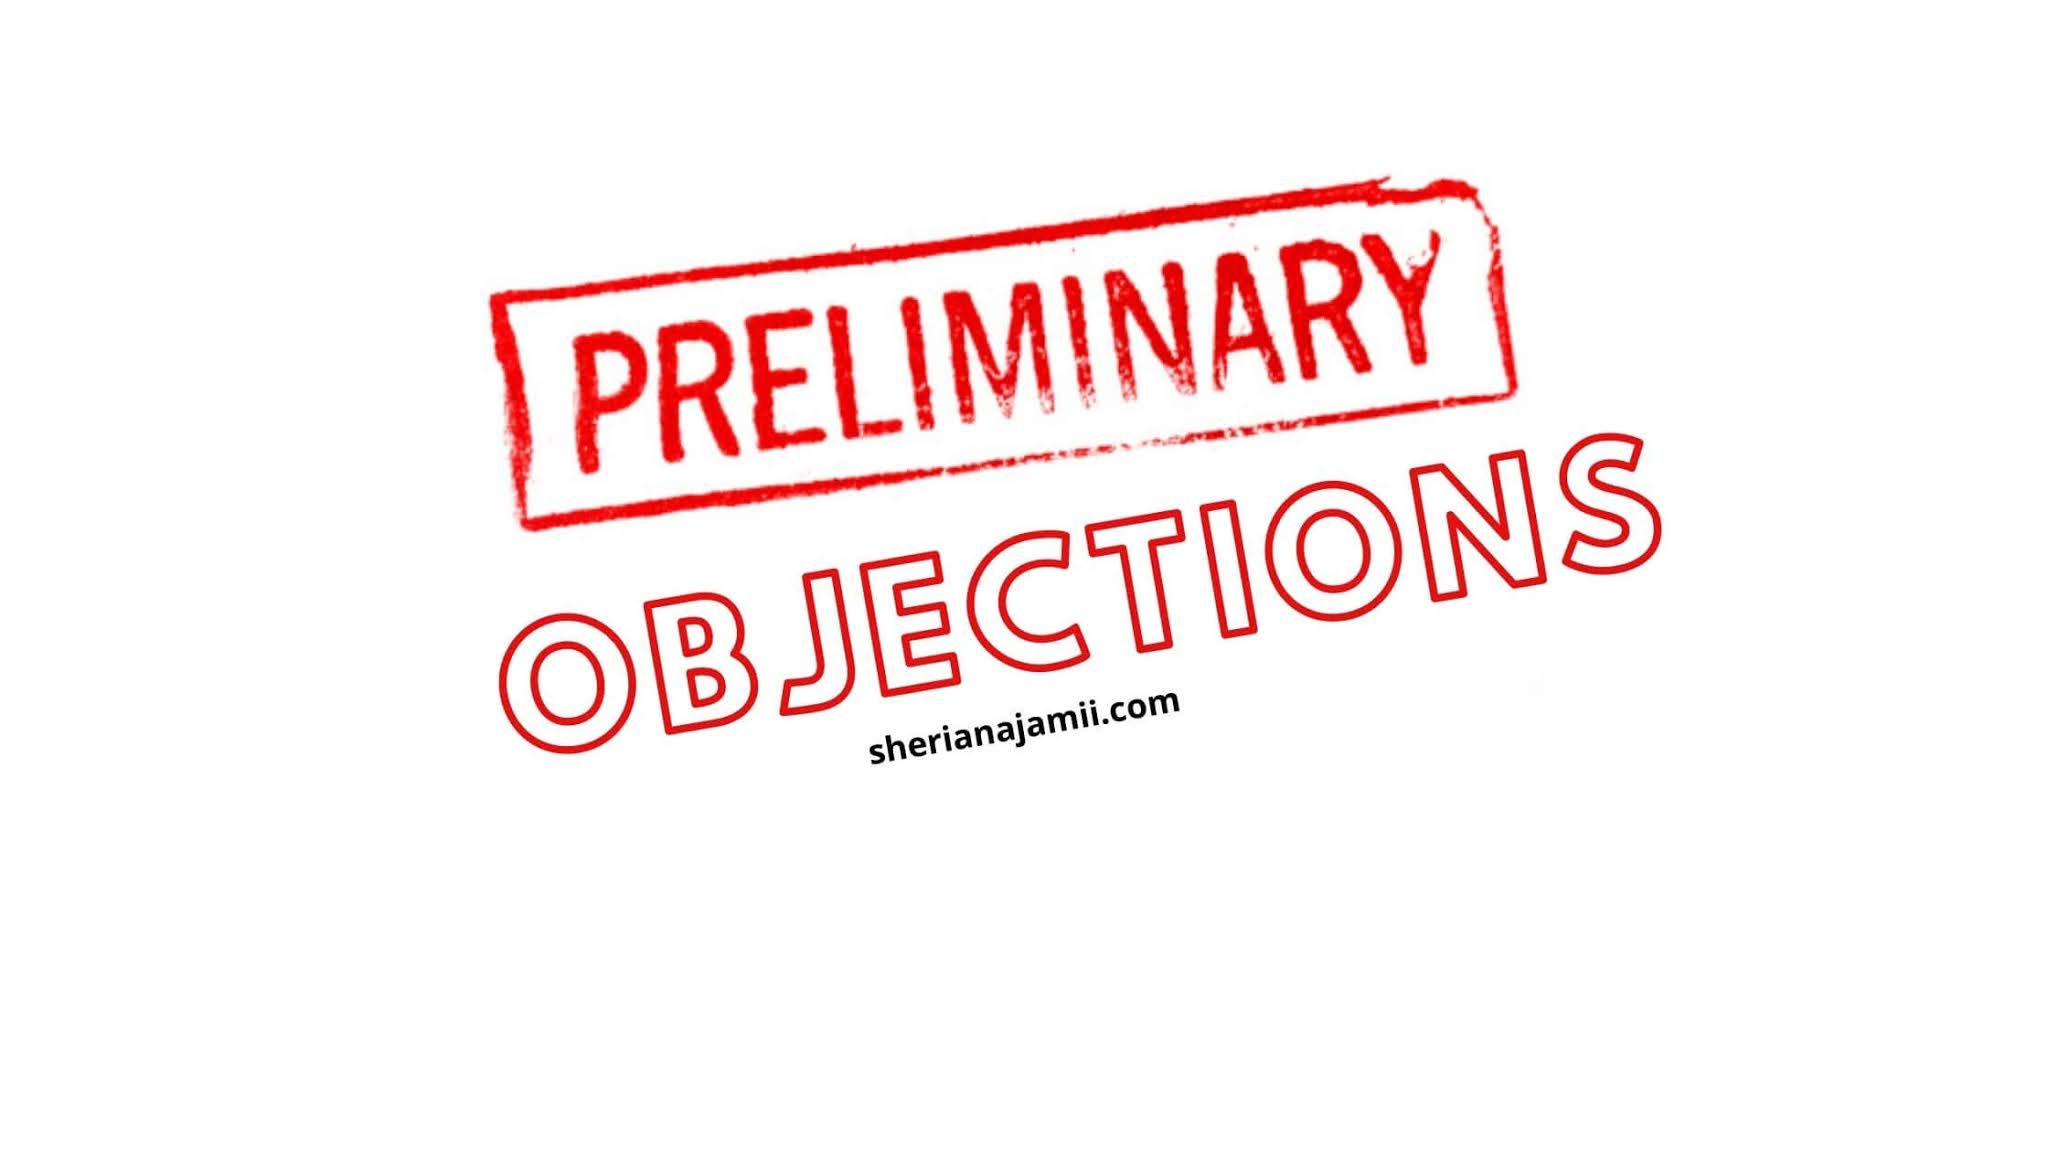 preliminary objections, grounds for preliminary objections